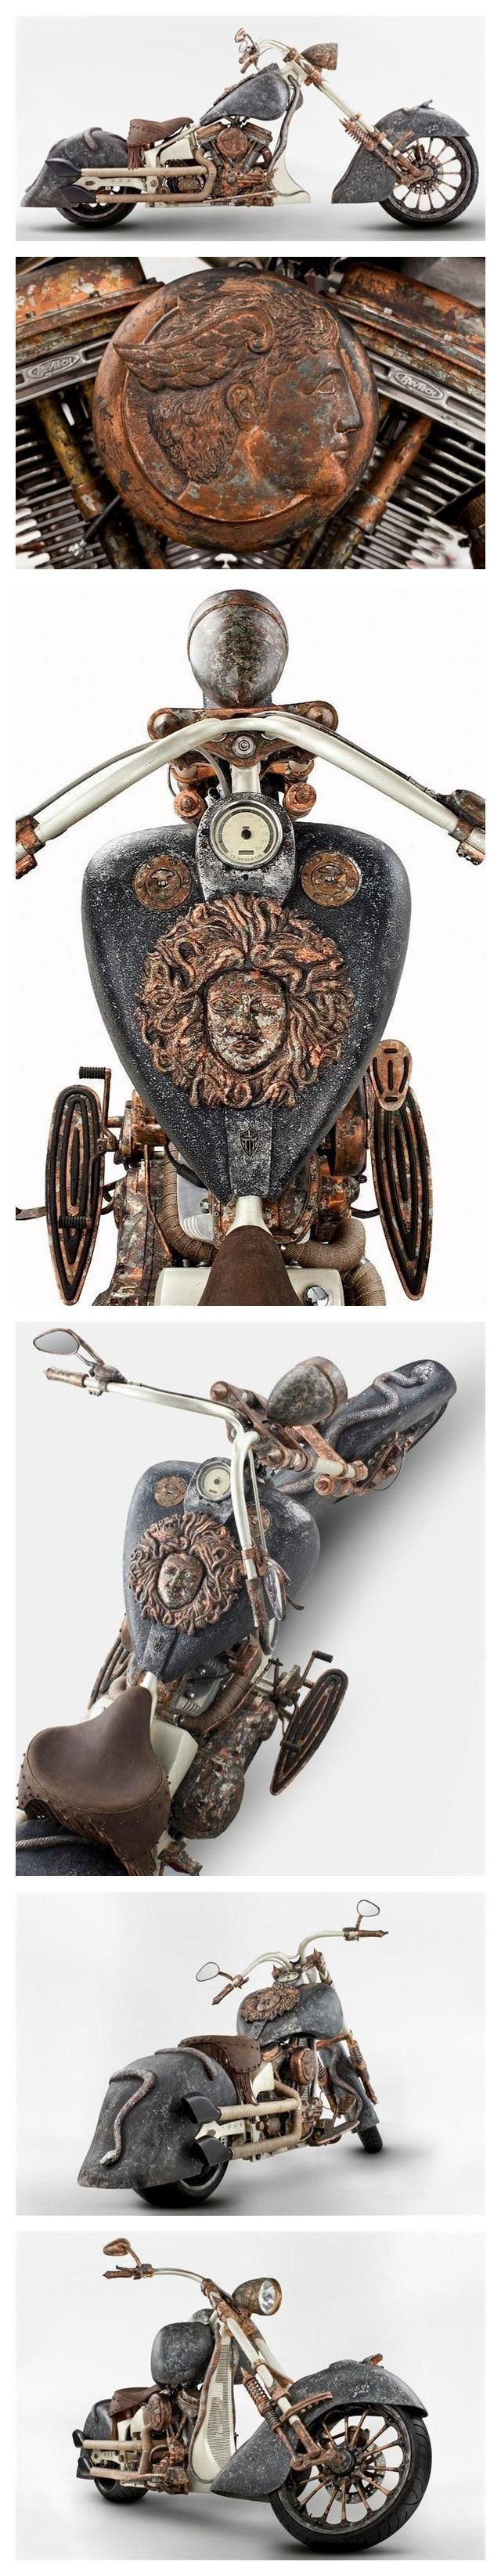 10 of the Most Expensive Bikes in The World - A Medusa chopper that will blow you away! Click to see more.